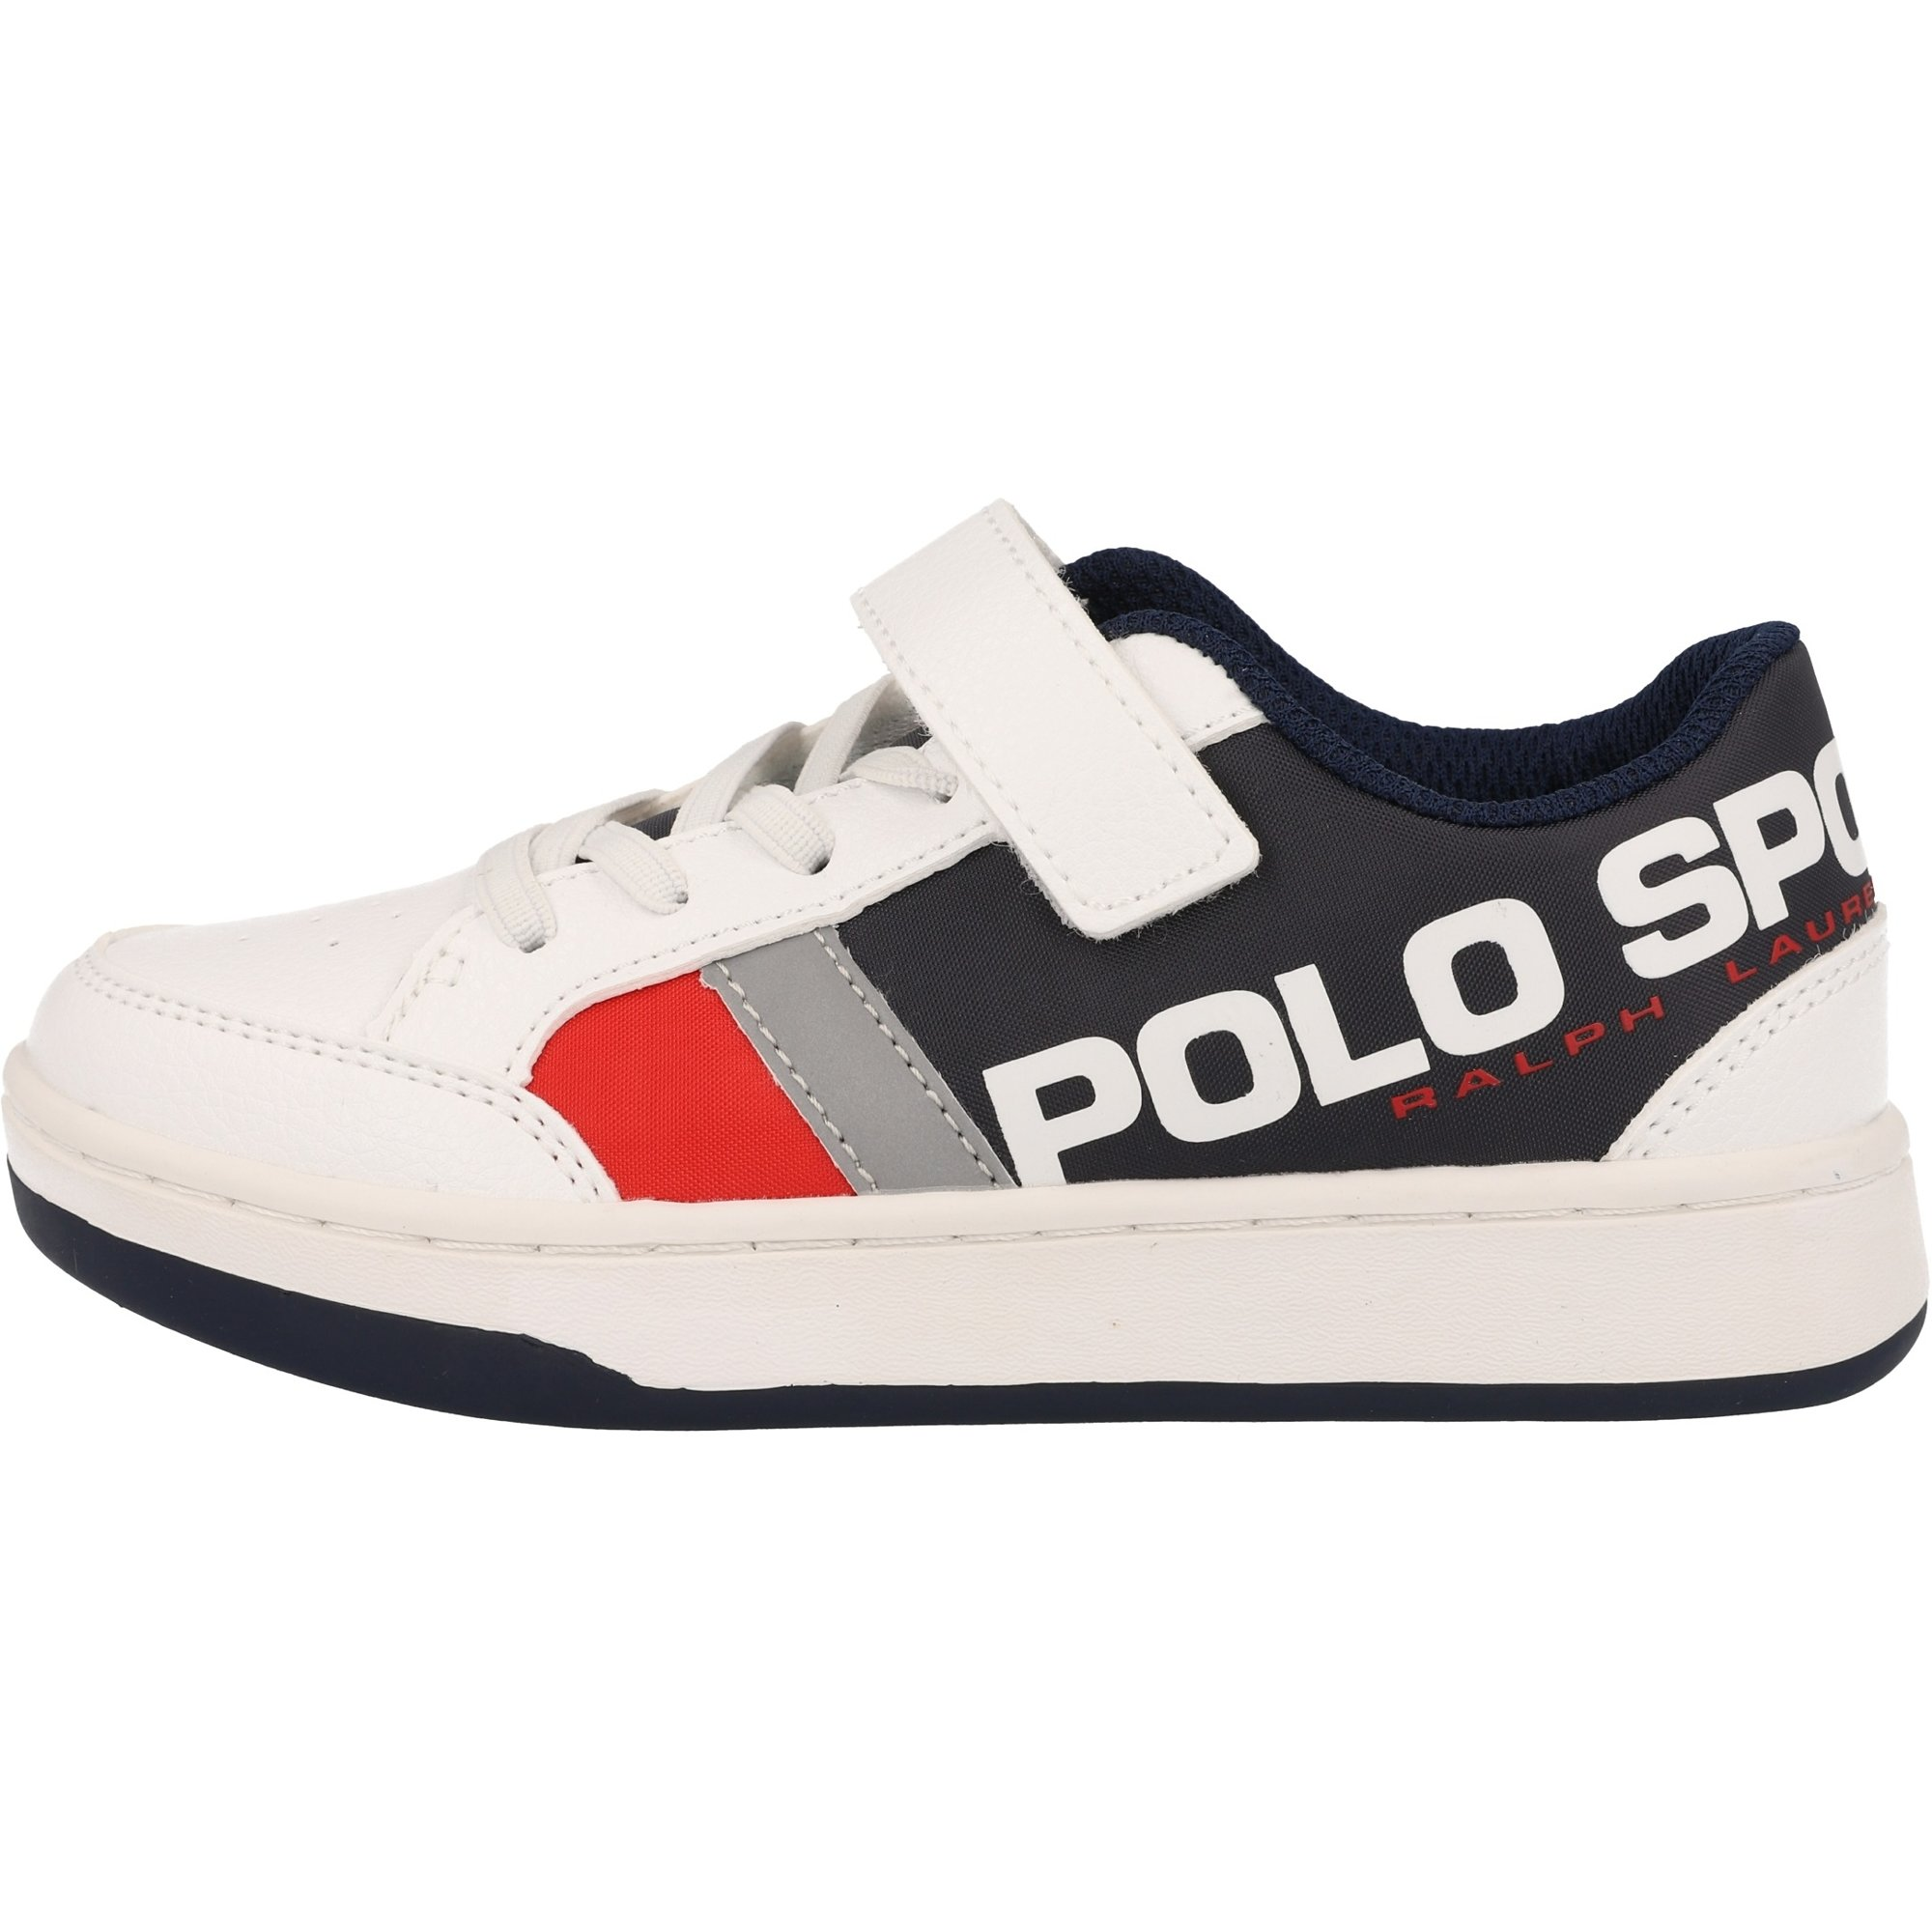 Polo Ralph Lauren Belden PS C White/Navy Tumbled